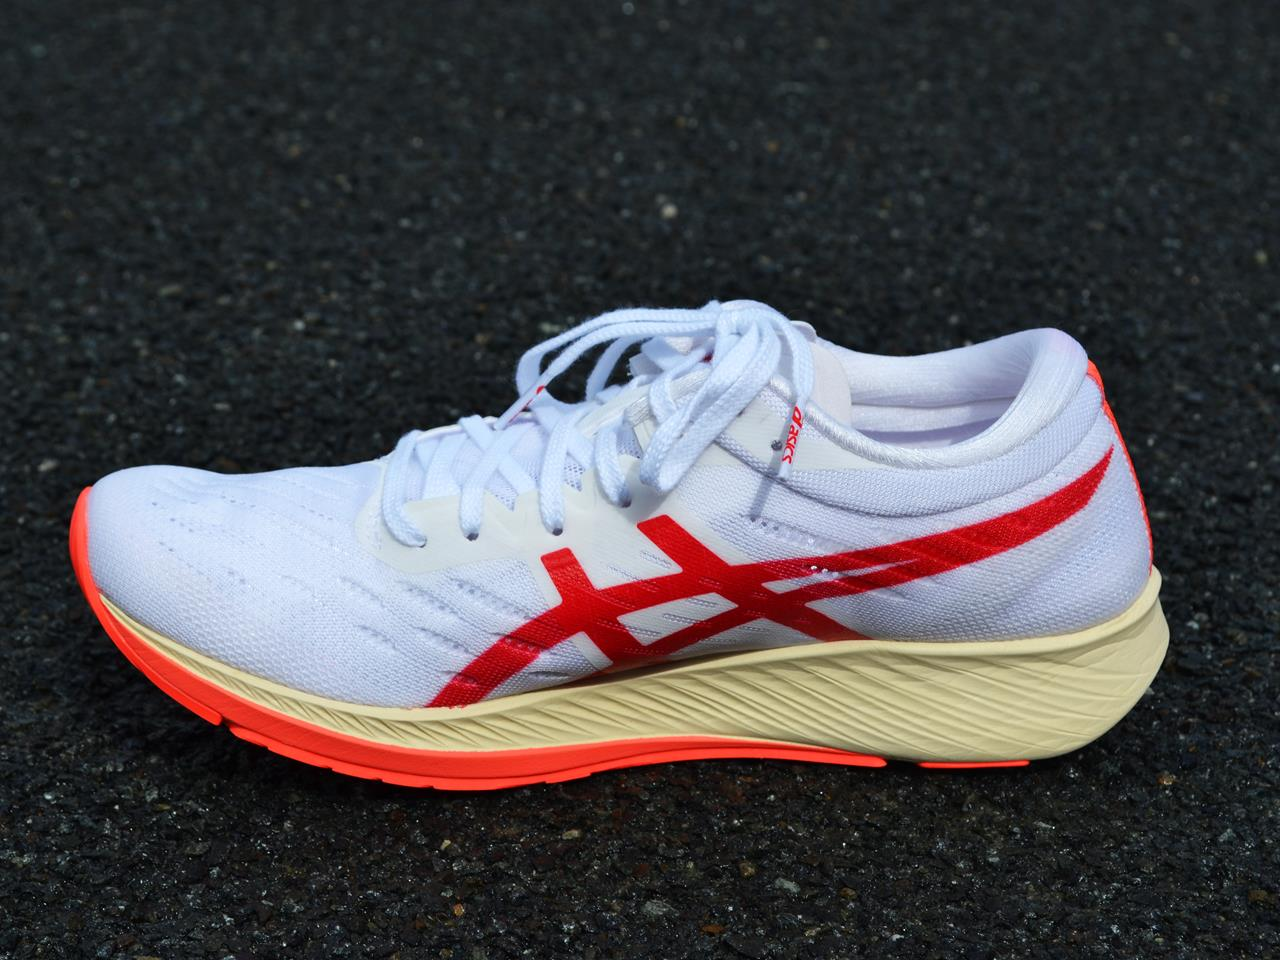 Asics MetaRacer - Medial Side